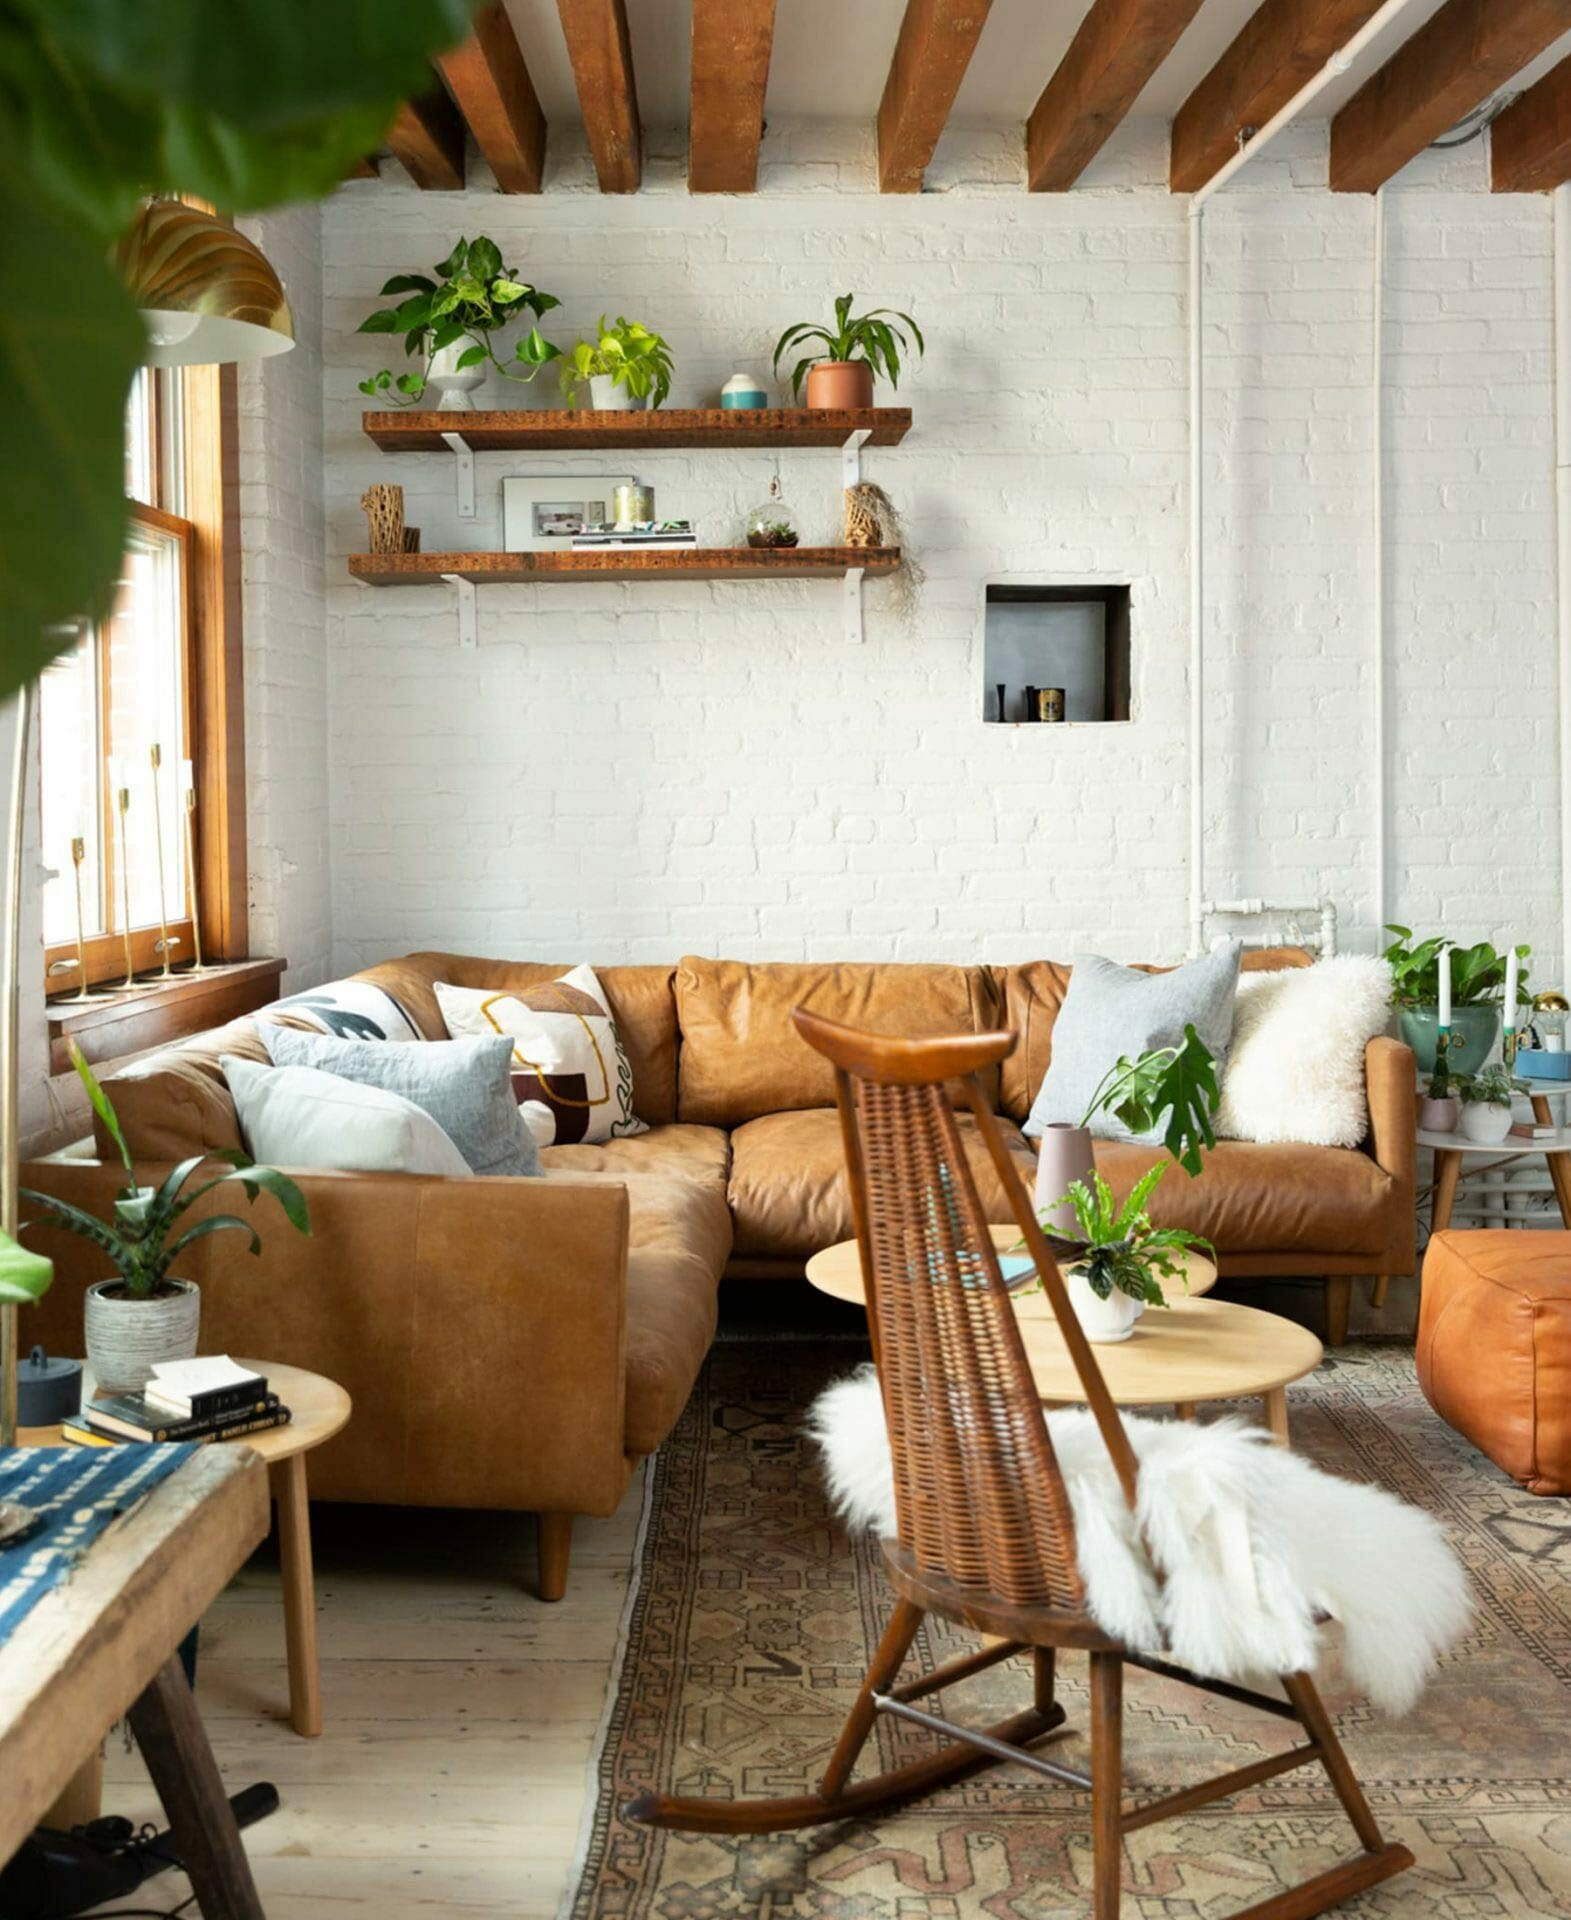 Marika Frumes' New York apartment with leather Article sectional sofa